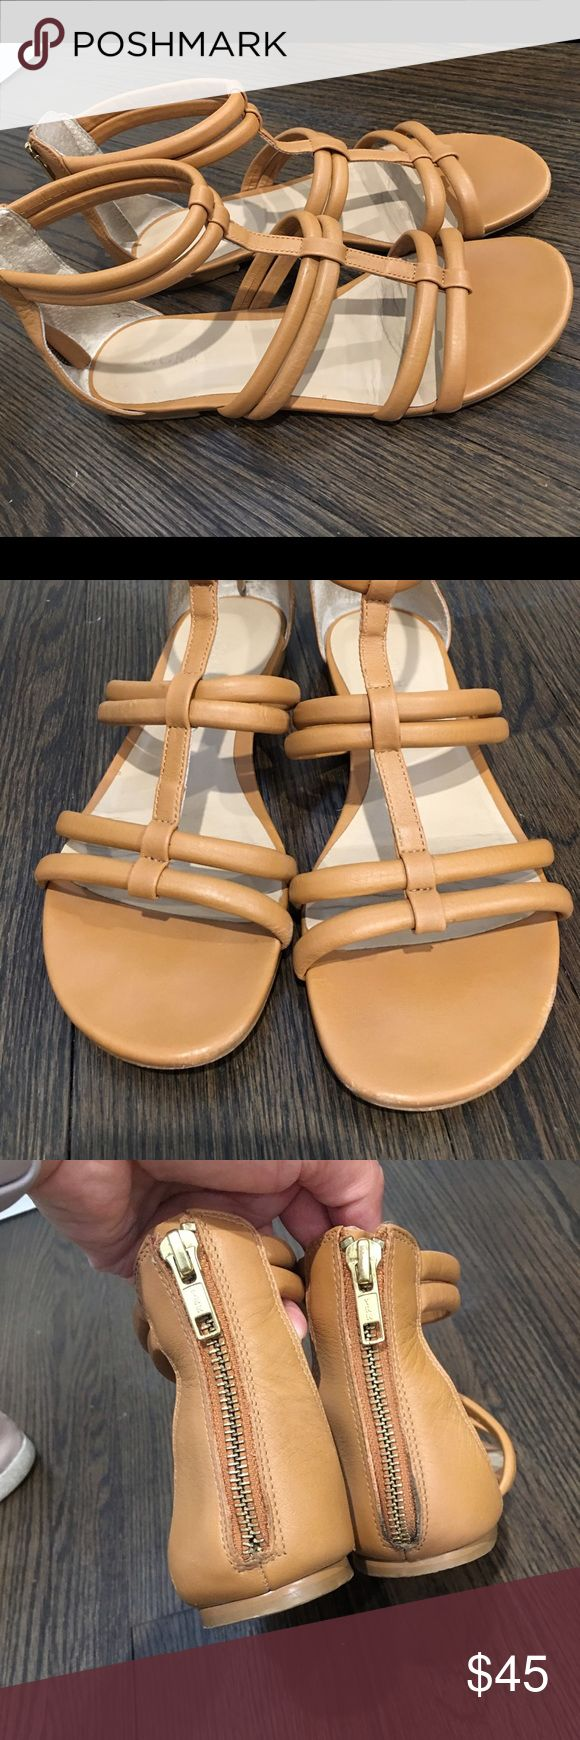 Preowned J. Crew Camel Zip Up Sandals 8 These are Preowned but still have plenty of life left.  This style sold out quickly and are no longer available.  Perfect for summer!  Size 8. J. Crew Shoes Sandals